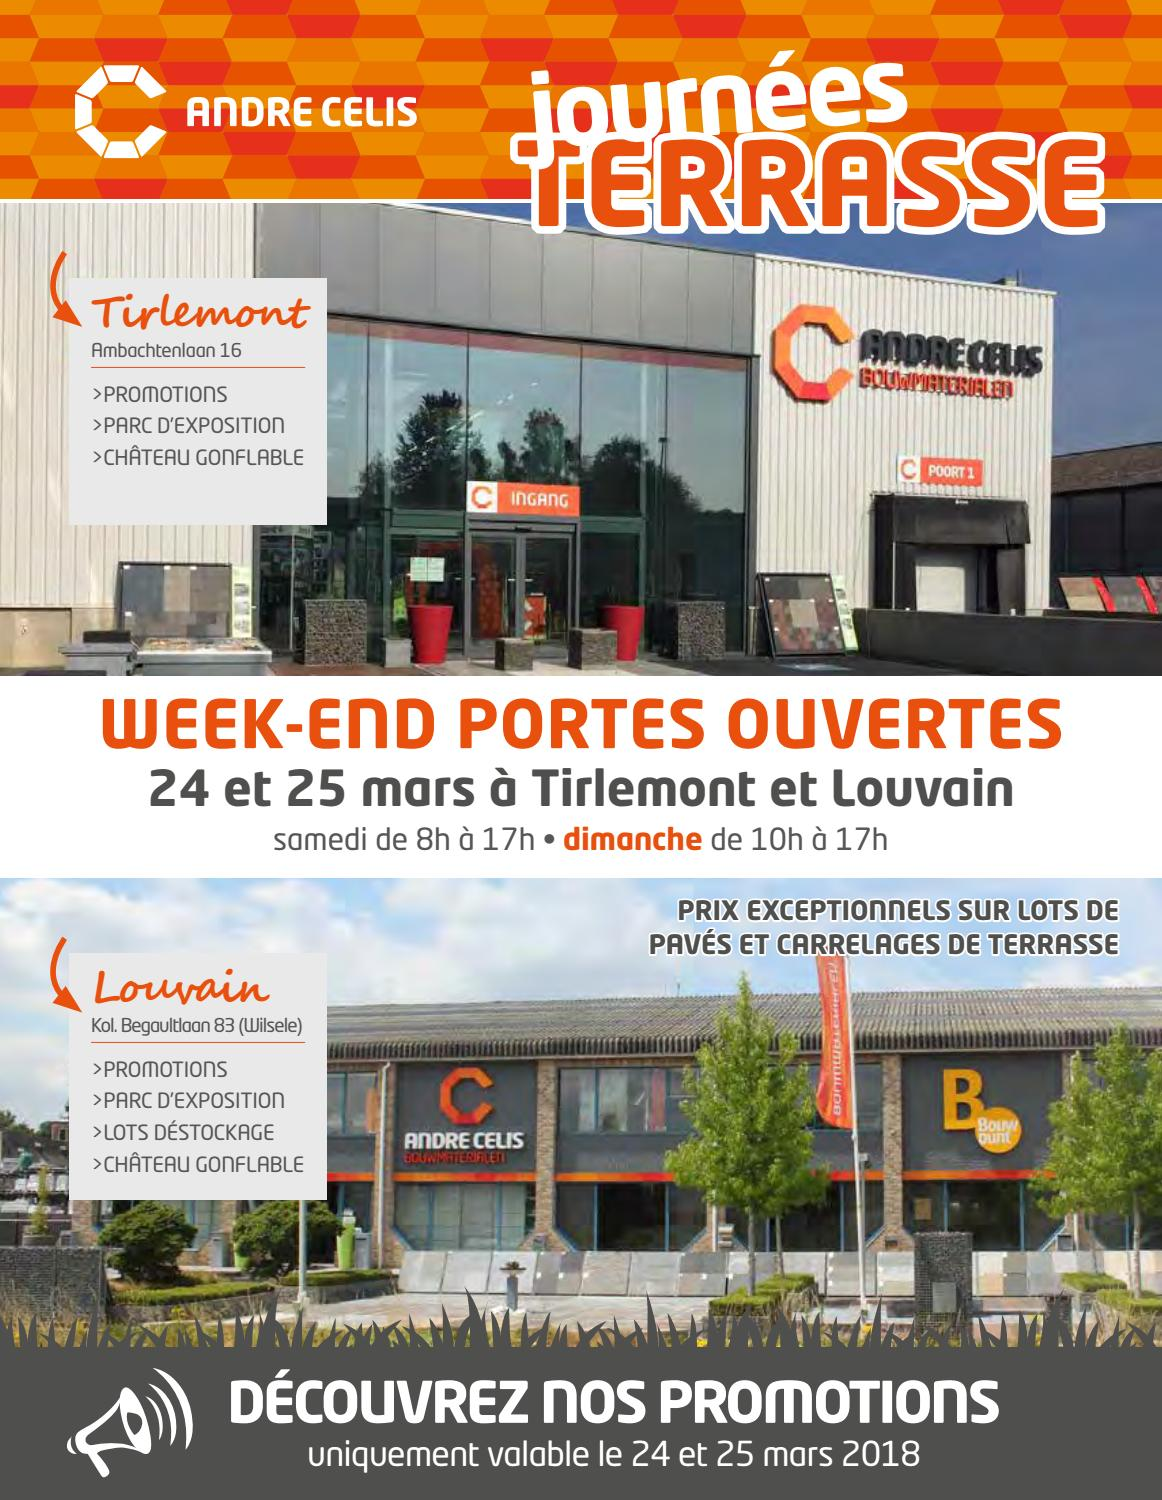 Destockage Dalle Terrasse André Celis Journées Terrasse 2018 By André Celis Issuu